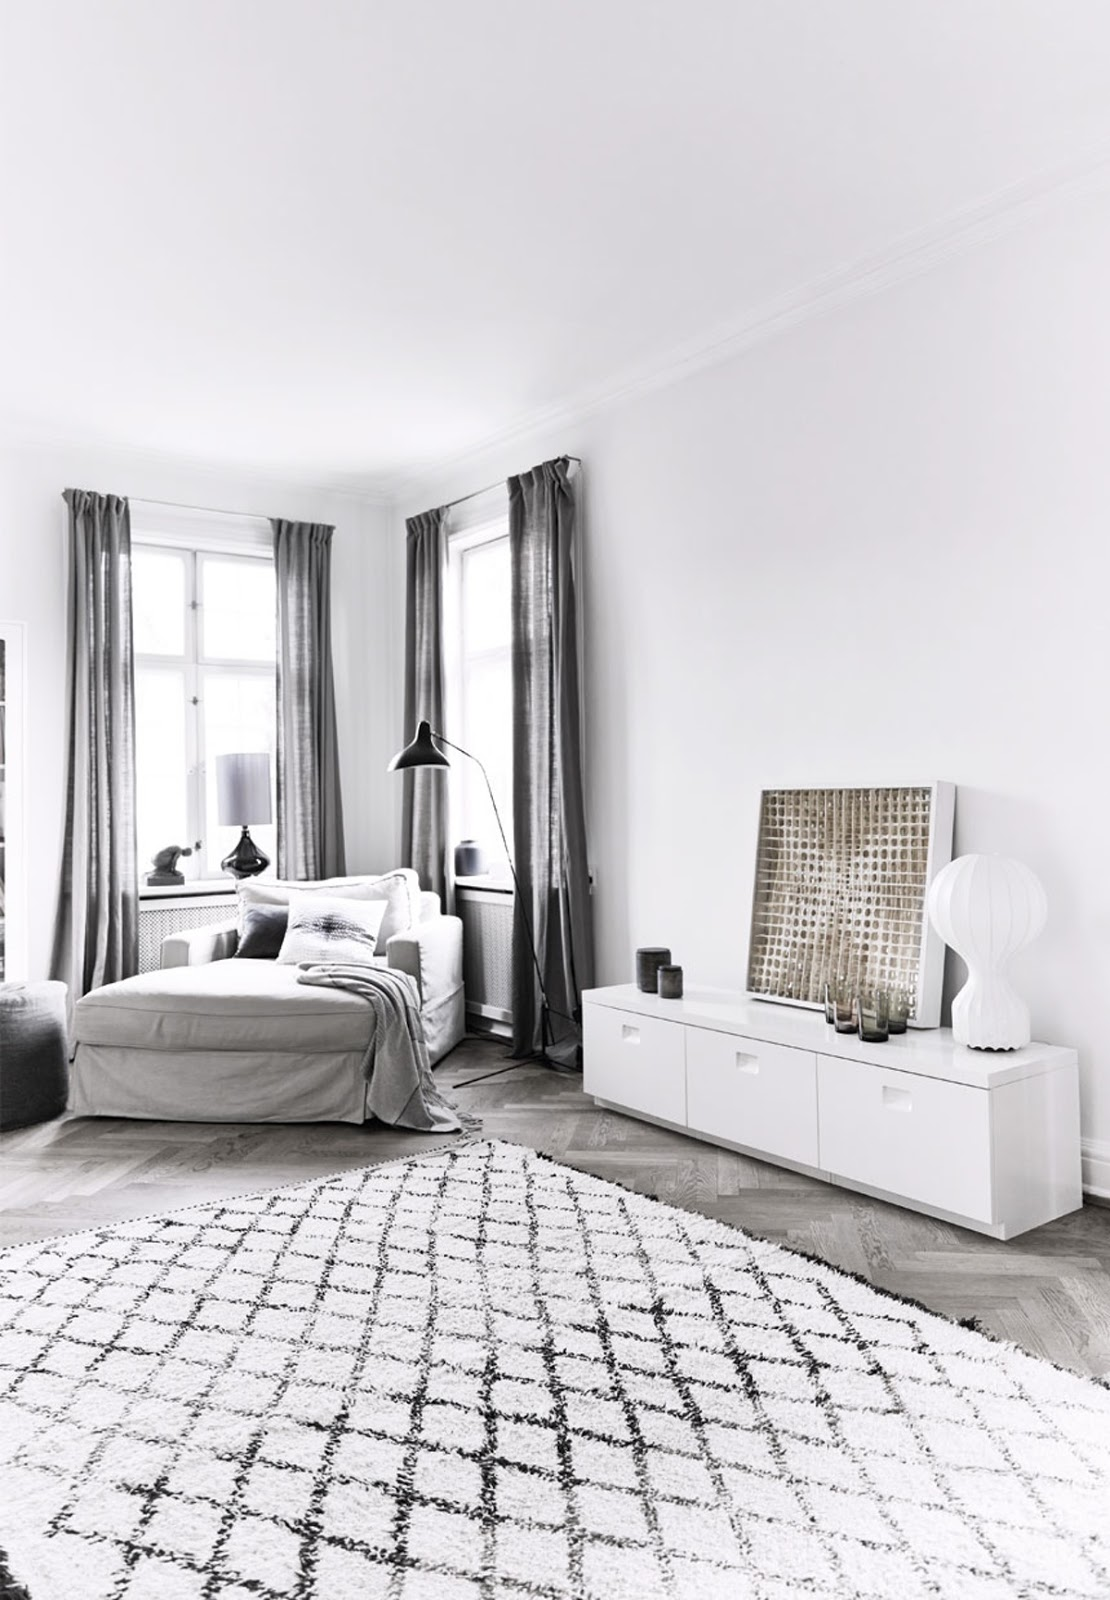 Her home is decorated with nordic and raw style where functionality and comfort meet aesthetics and design